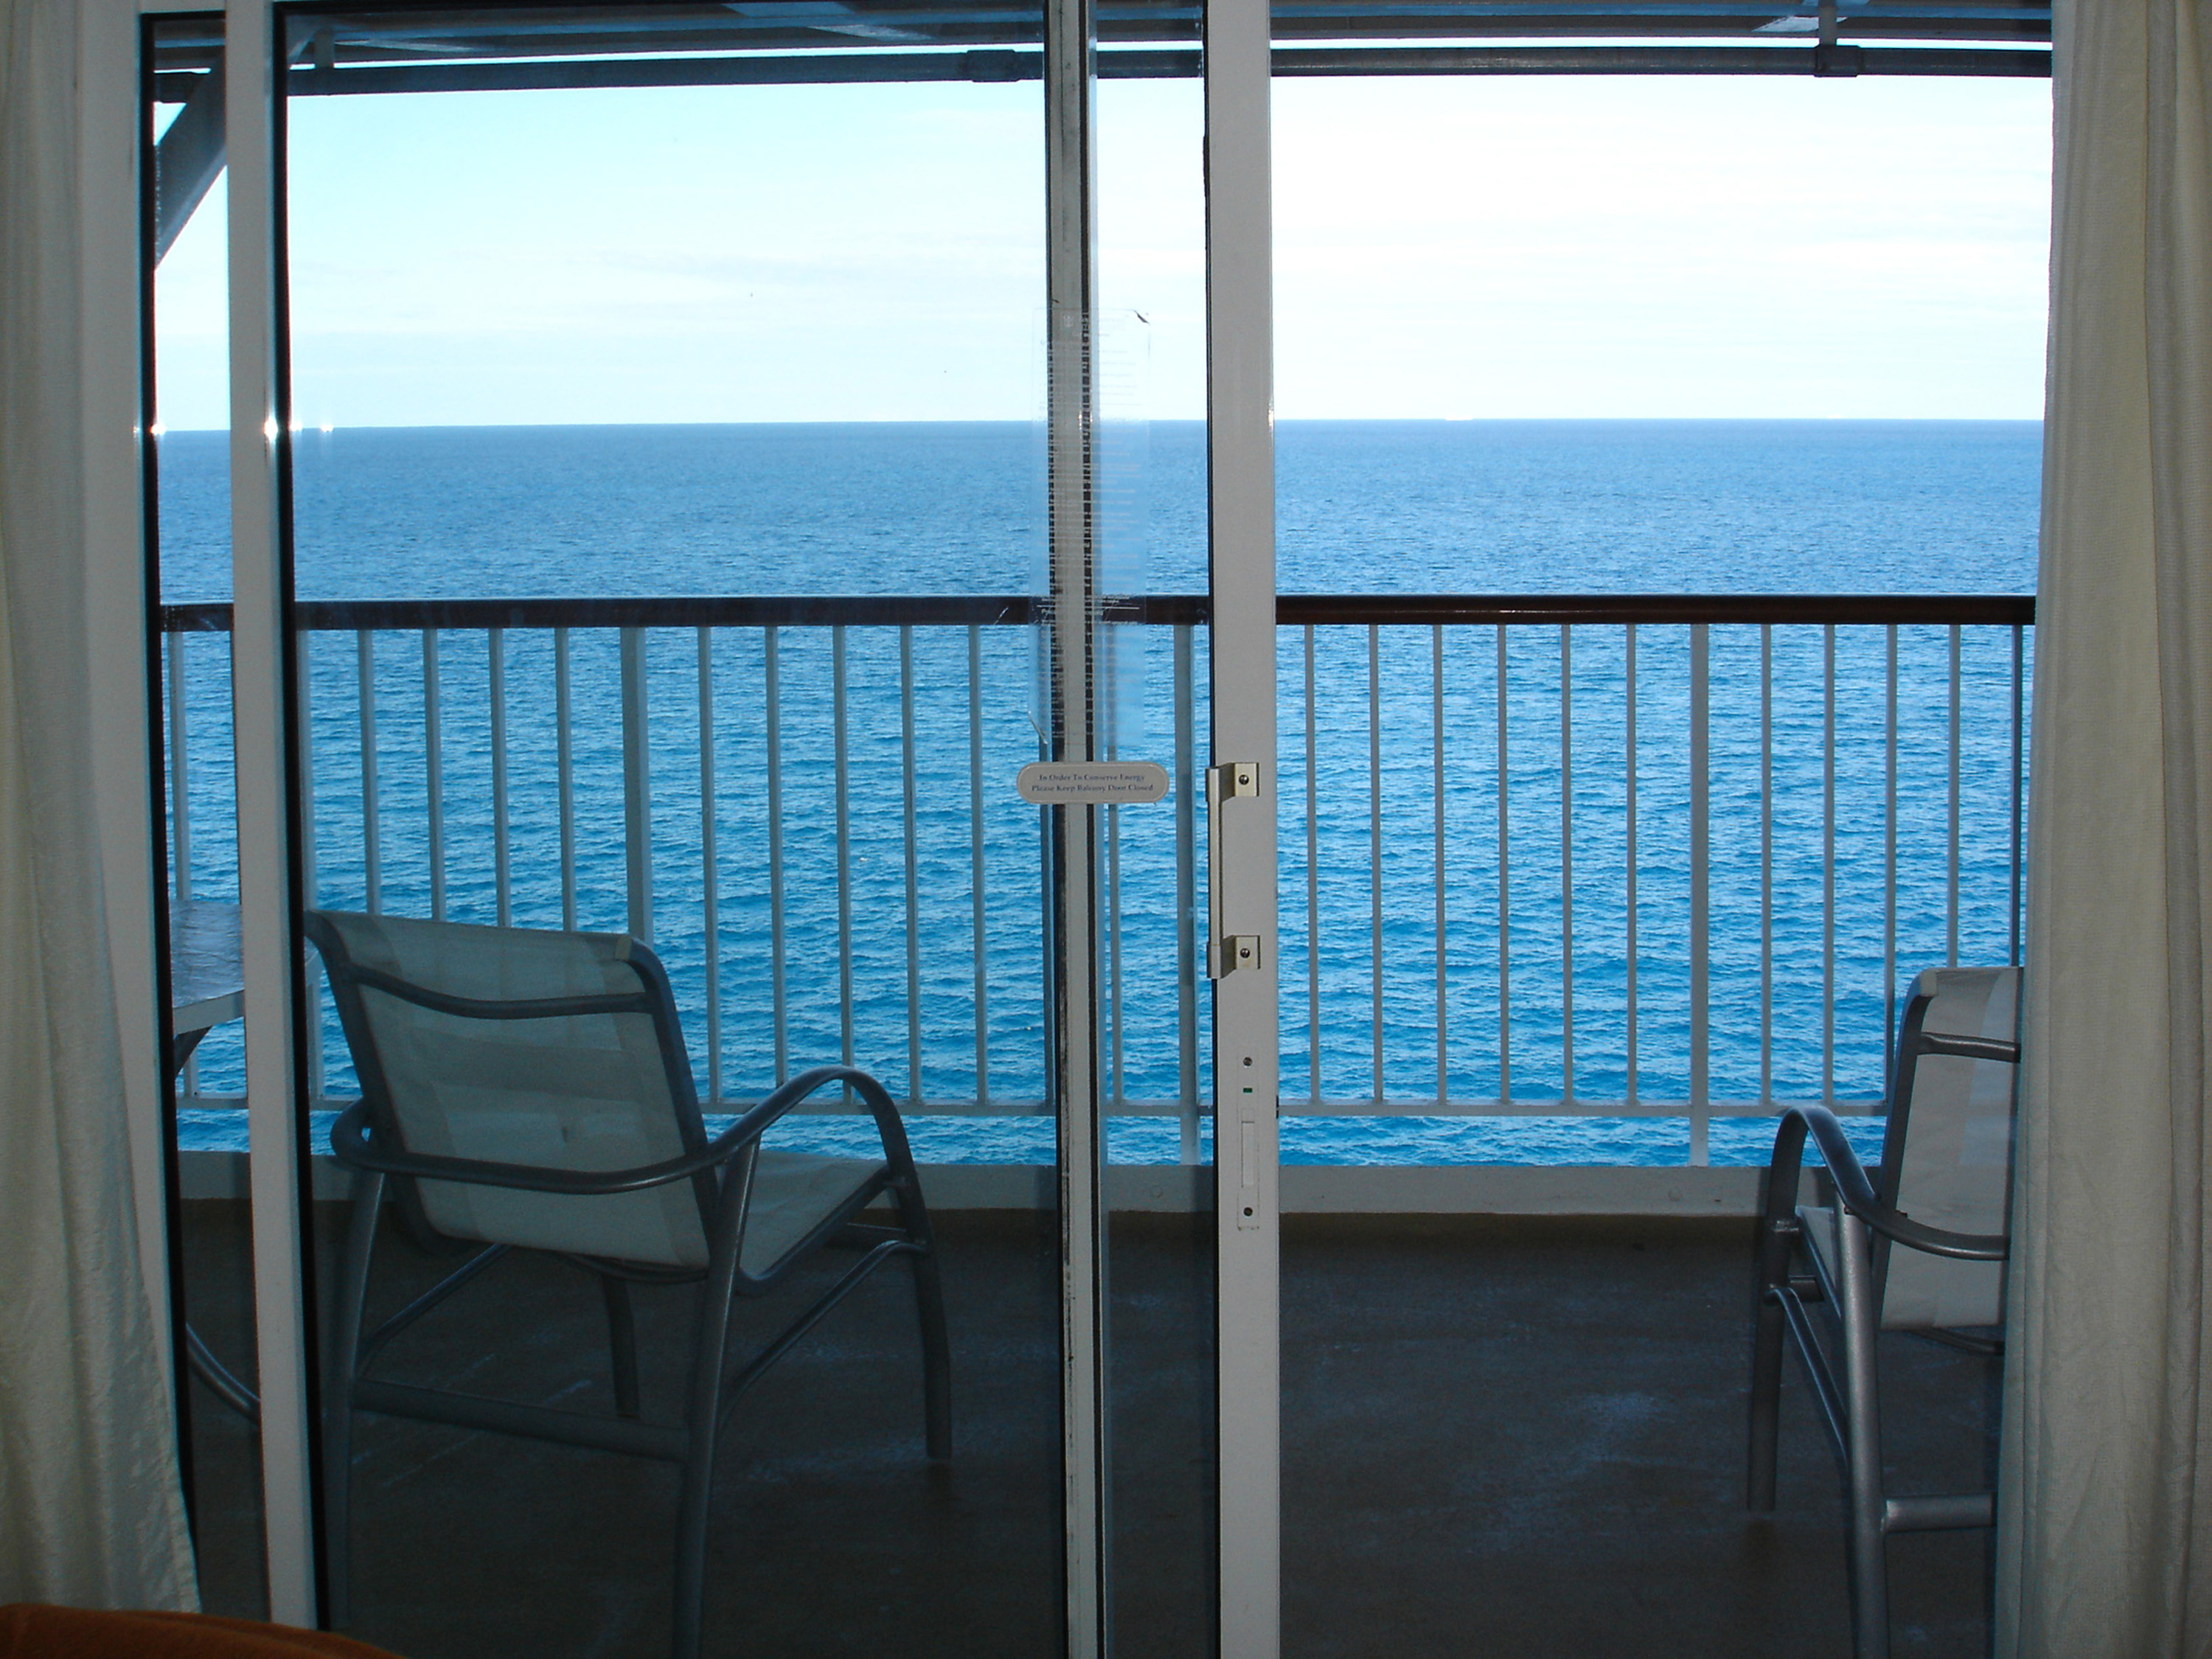 Free stock photo 6510 balcony with ocean view freeimageslive for Balcony overlooking ocean